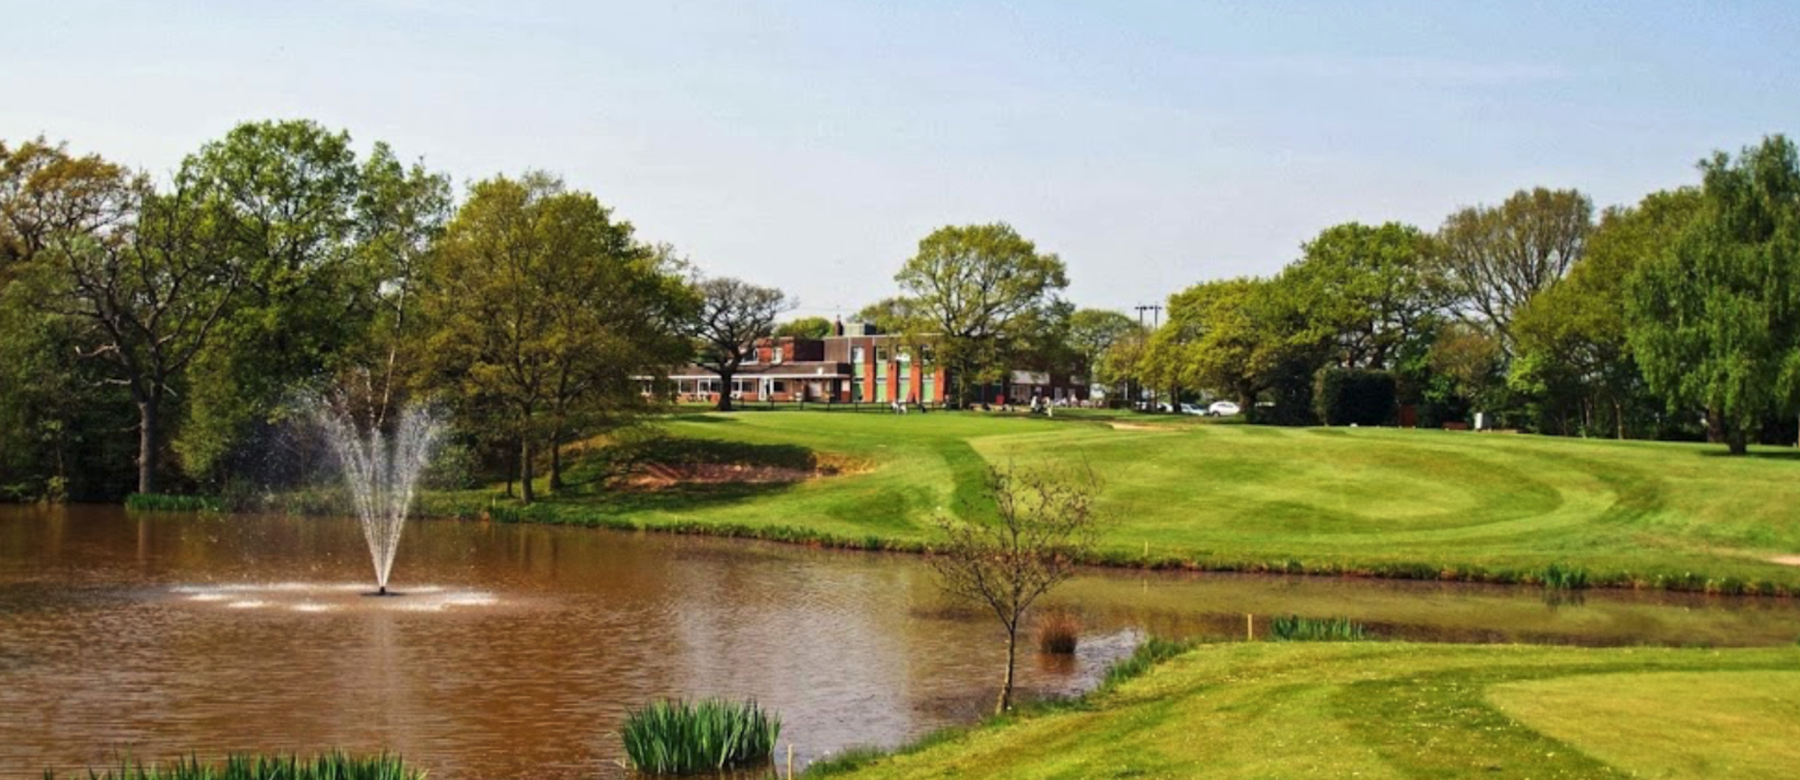 Hagley GC - venue for 2020 Boys Championships